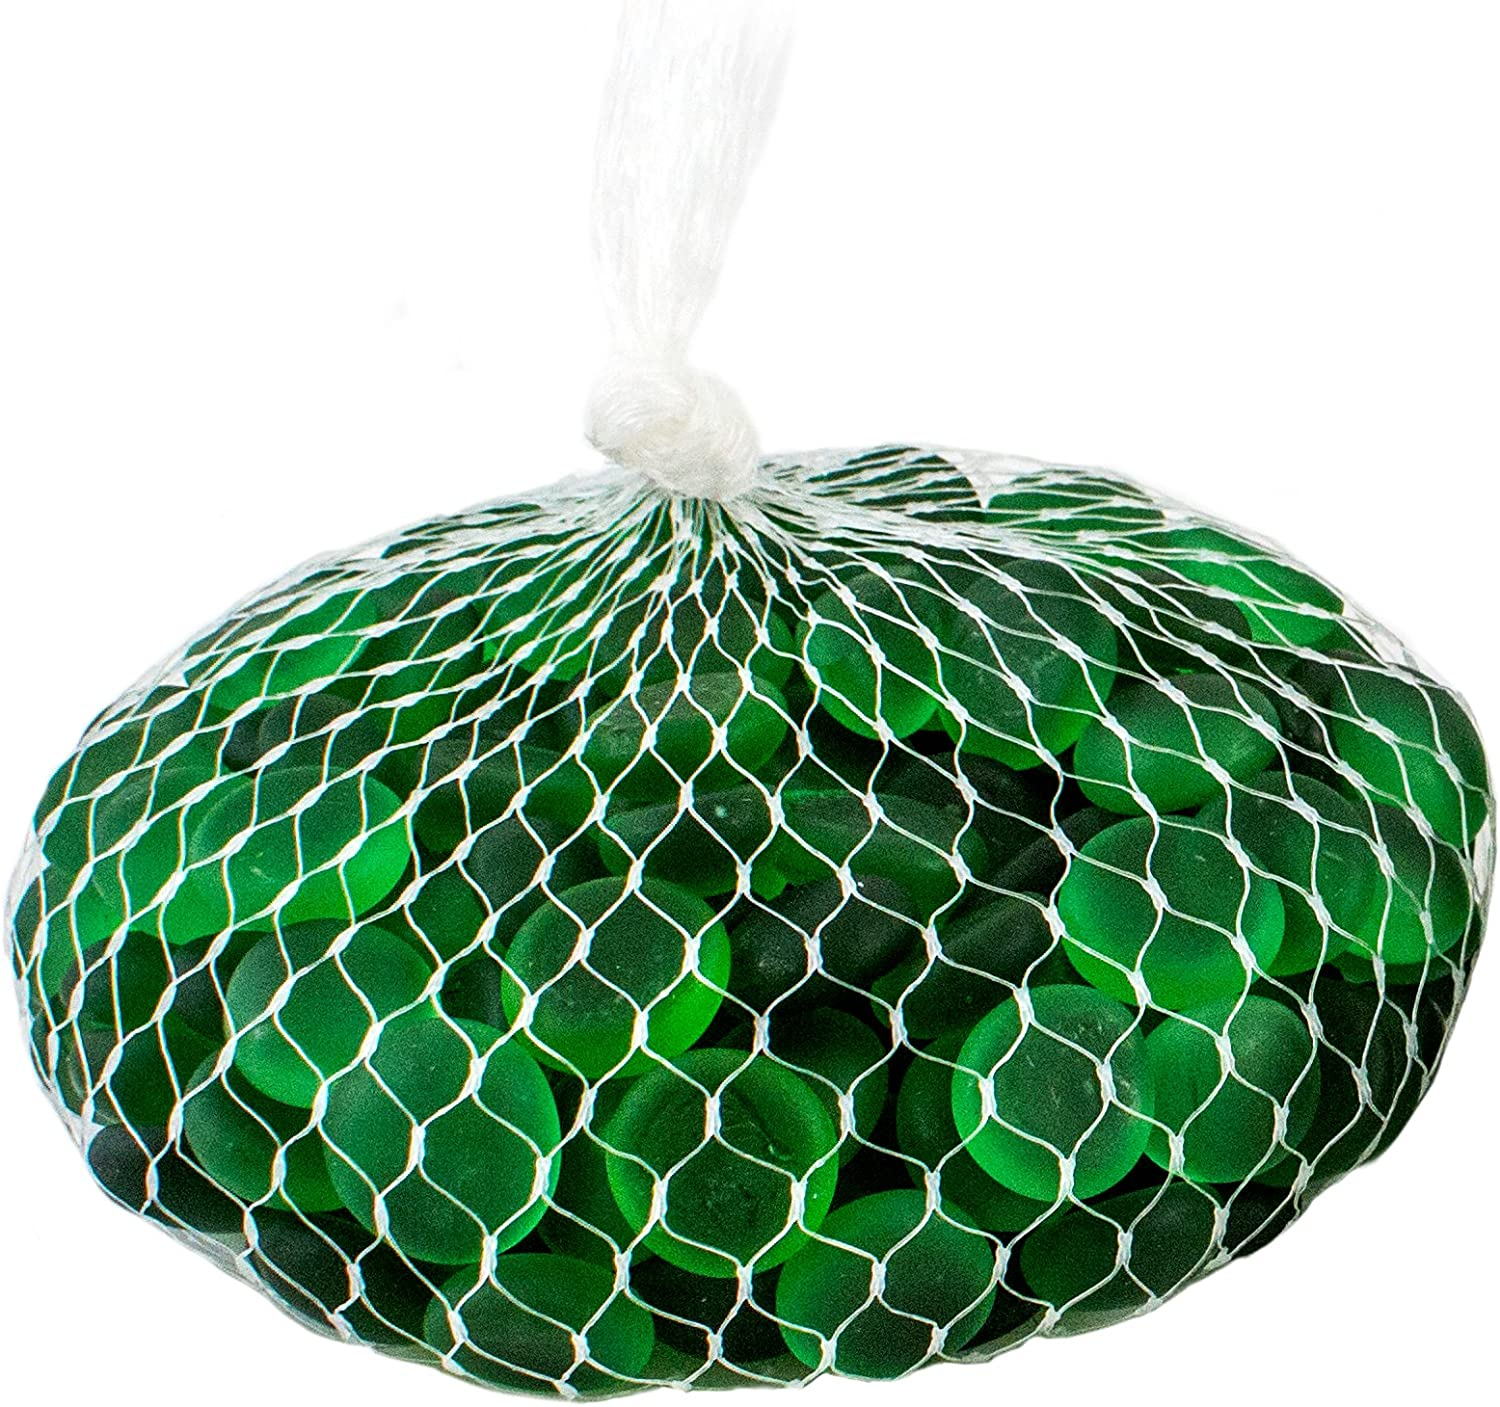 Supermoss 24133 Soft Glass Pebbles Vase Filler 2 Lb Emerald Green Garden Outdoor